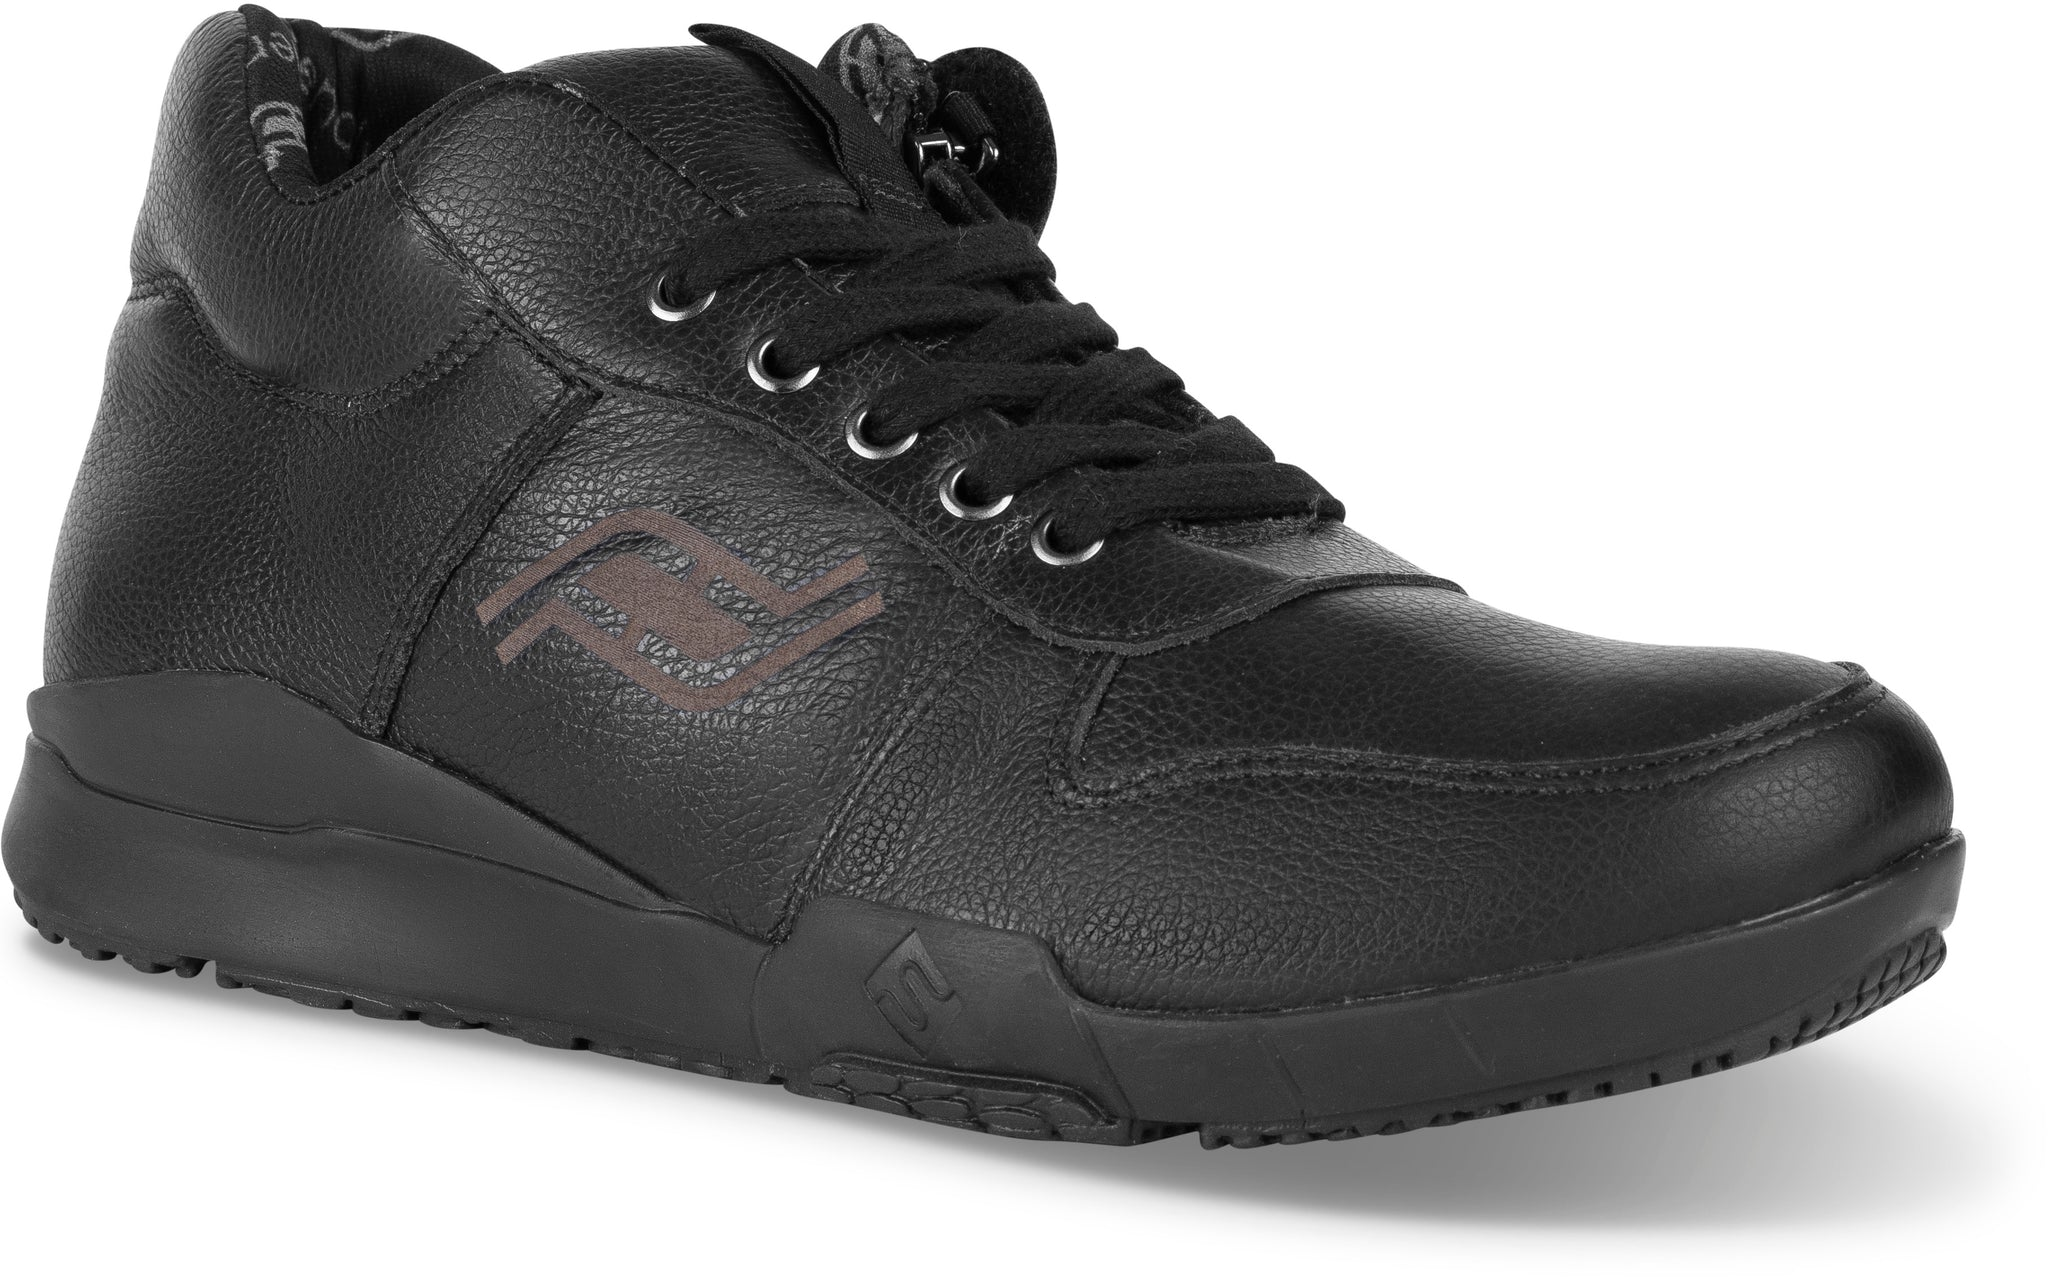 Men's Medimoto Black Leather